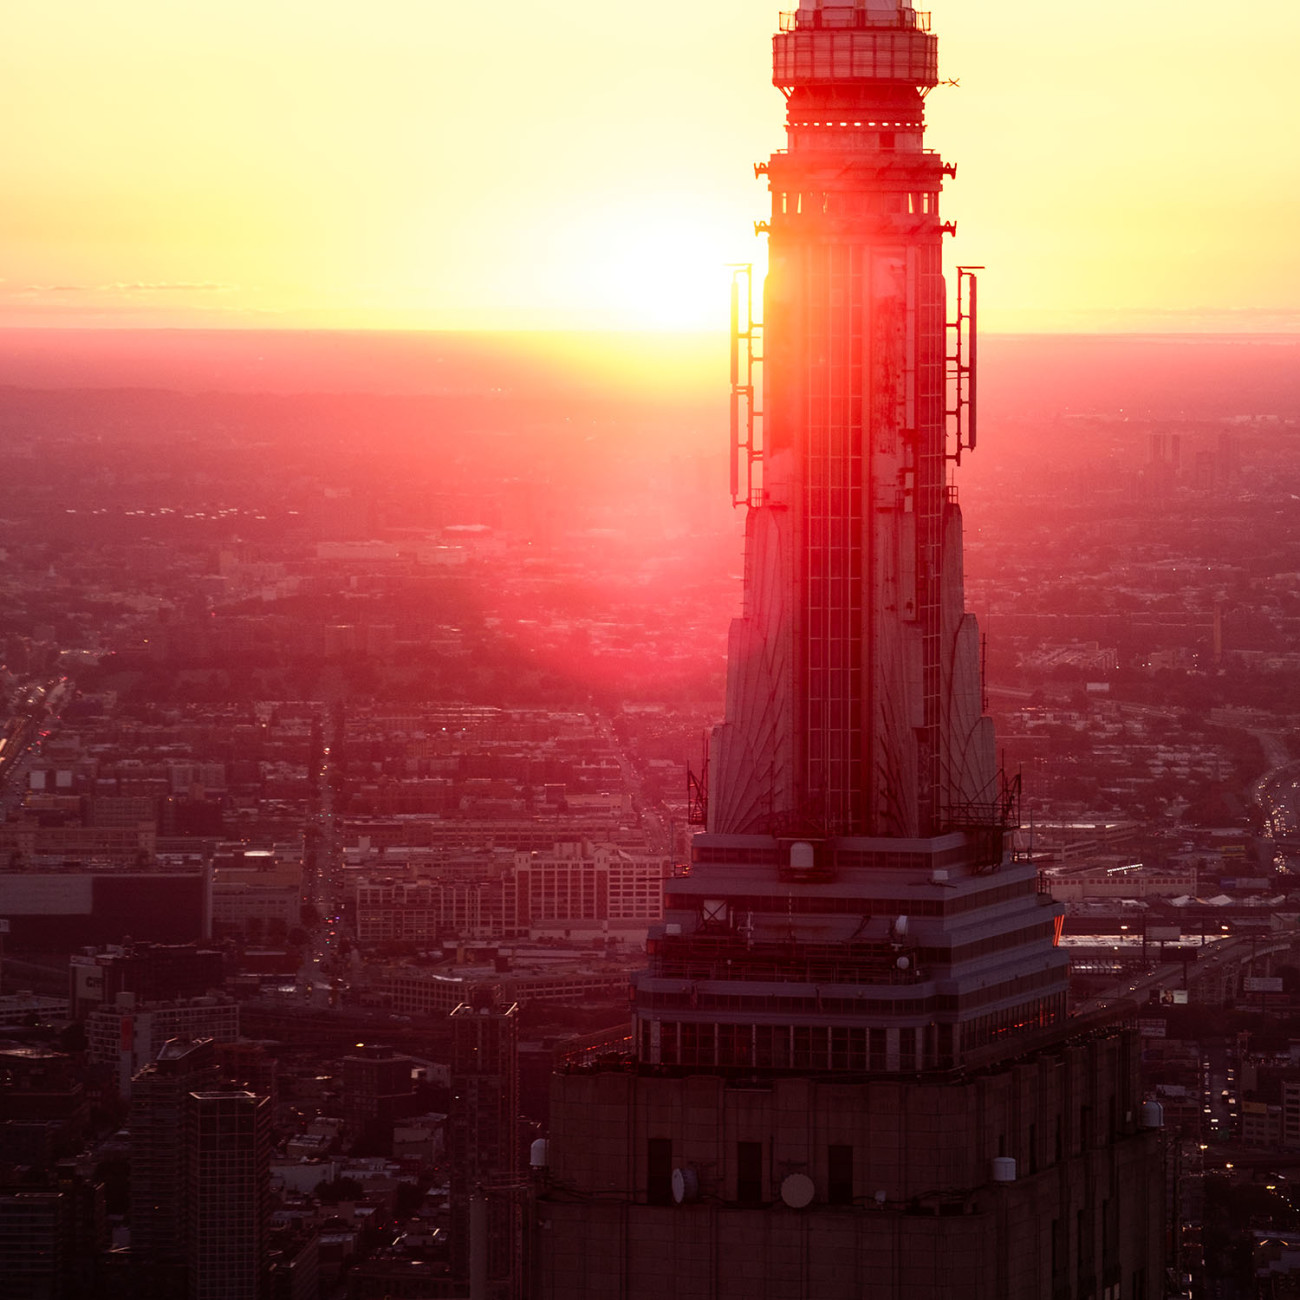 Tower Empire State Building at dawn, NY, 2016